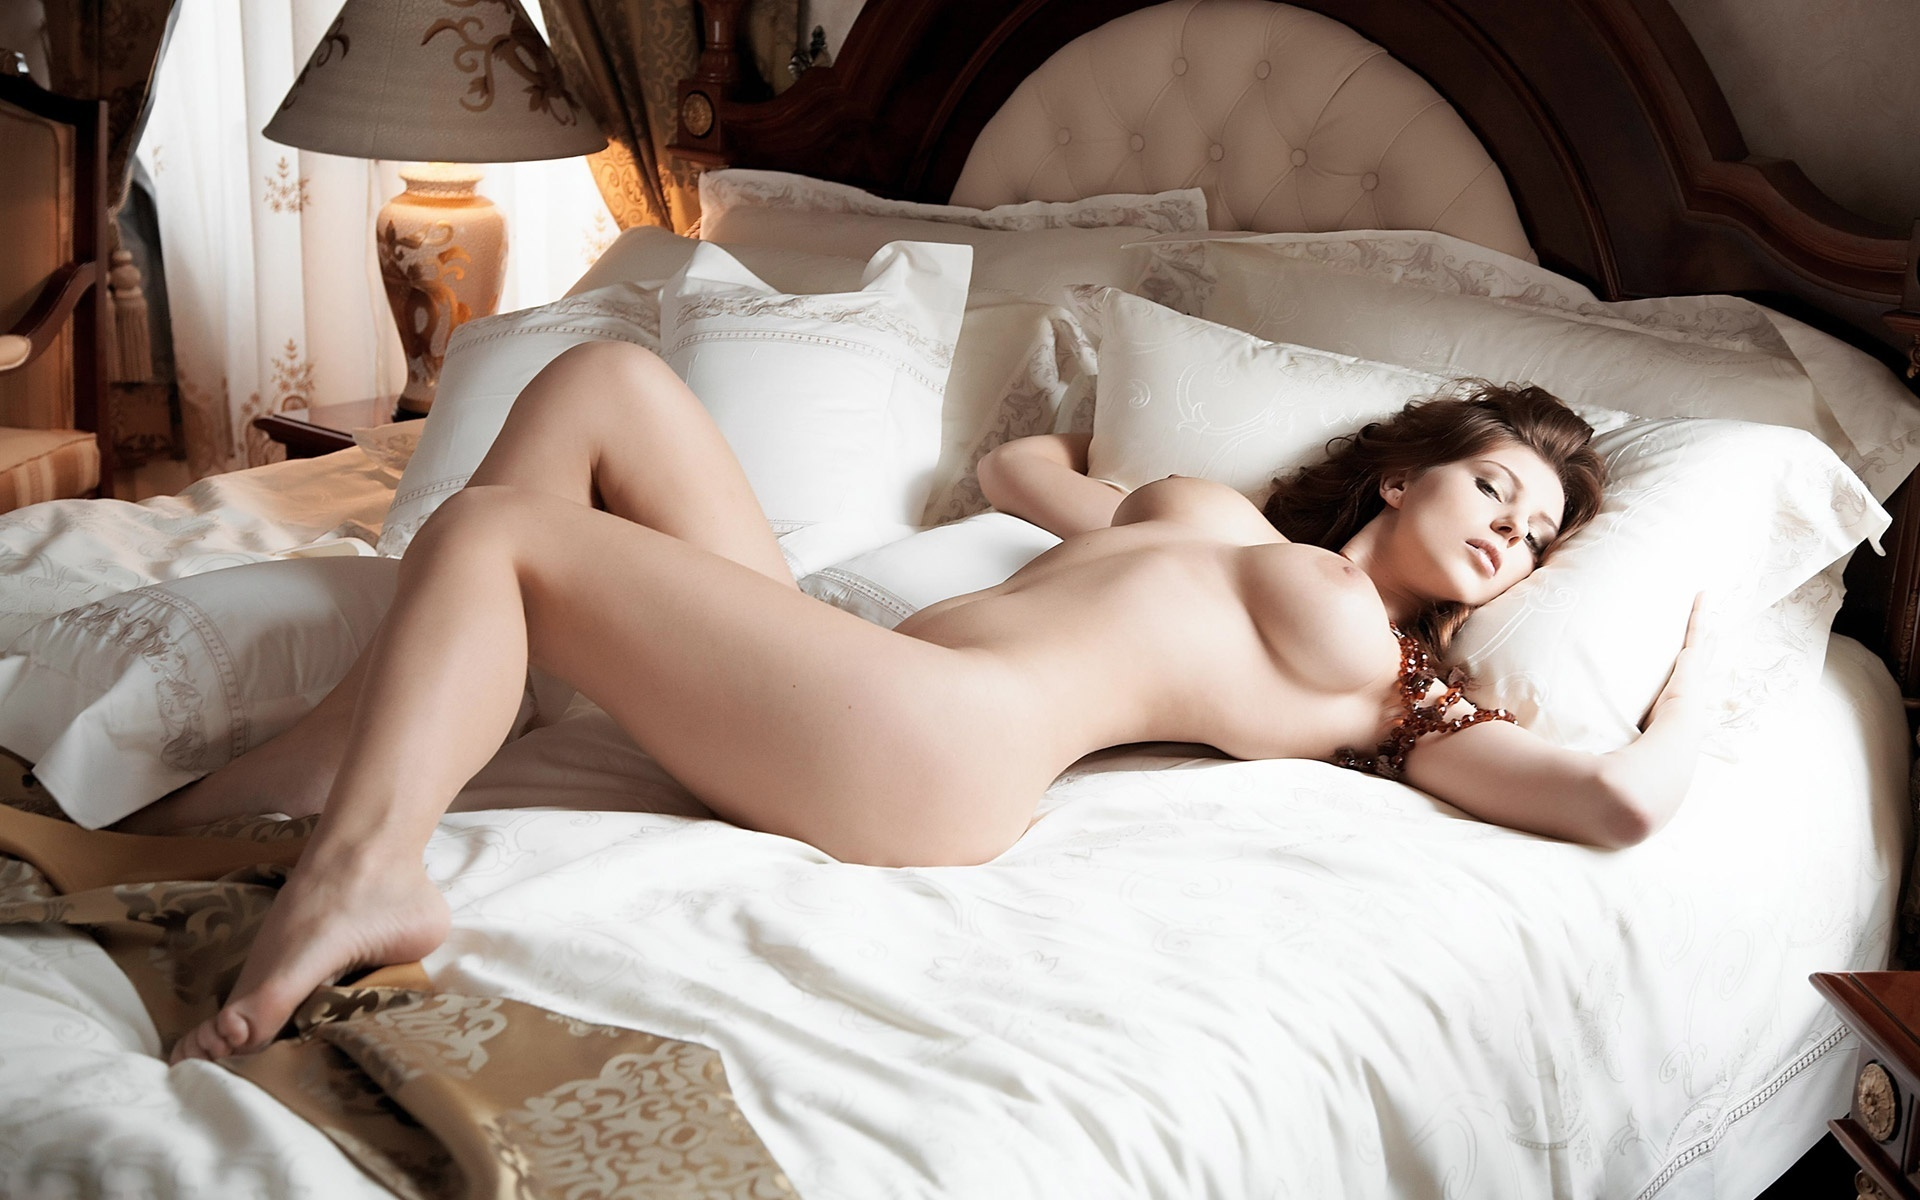 Sexual and erotic fucking pleasures with hot girls